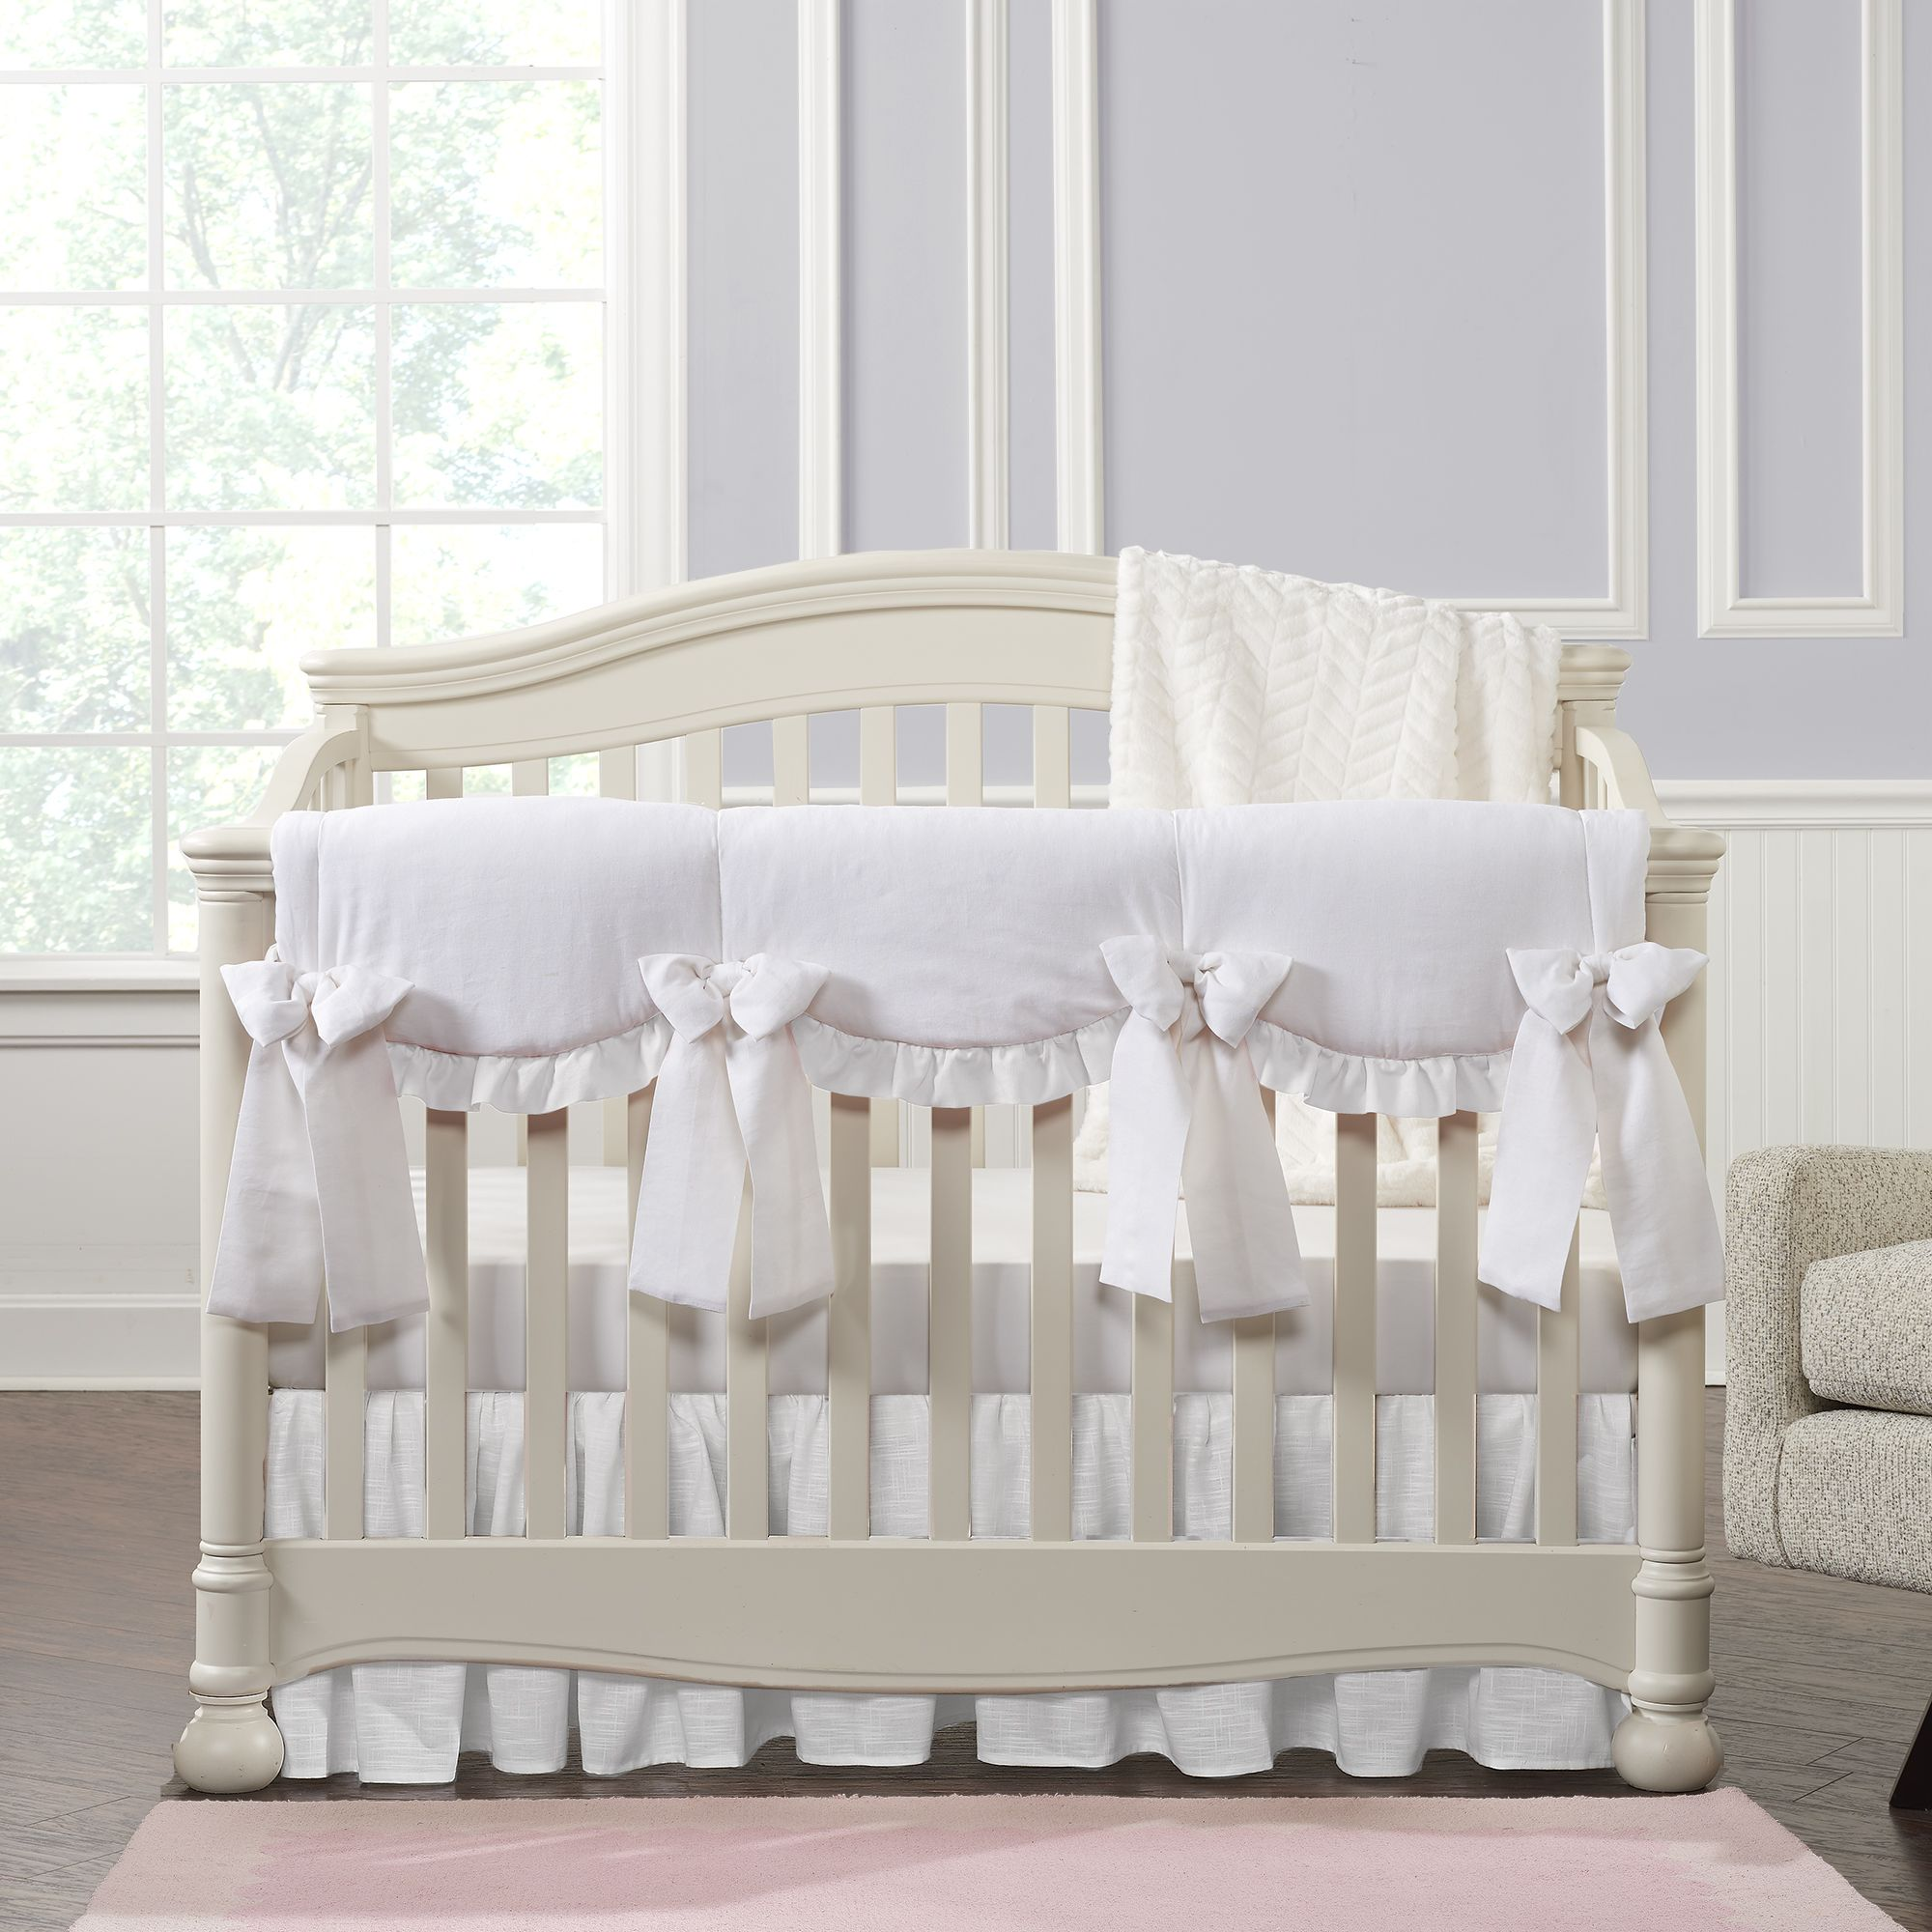 All White Crib Bedding Collection In 2020 White Crib Bedding